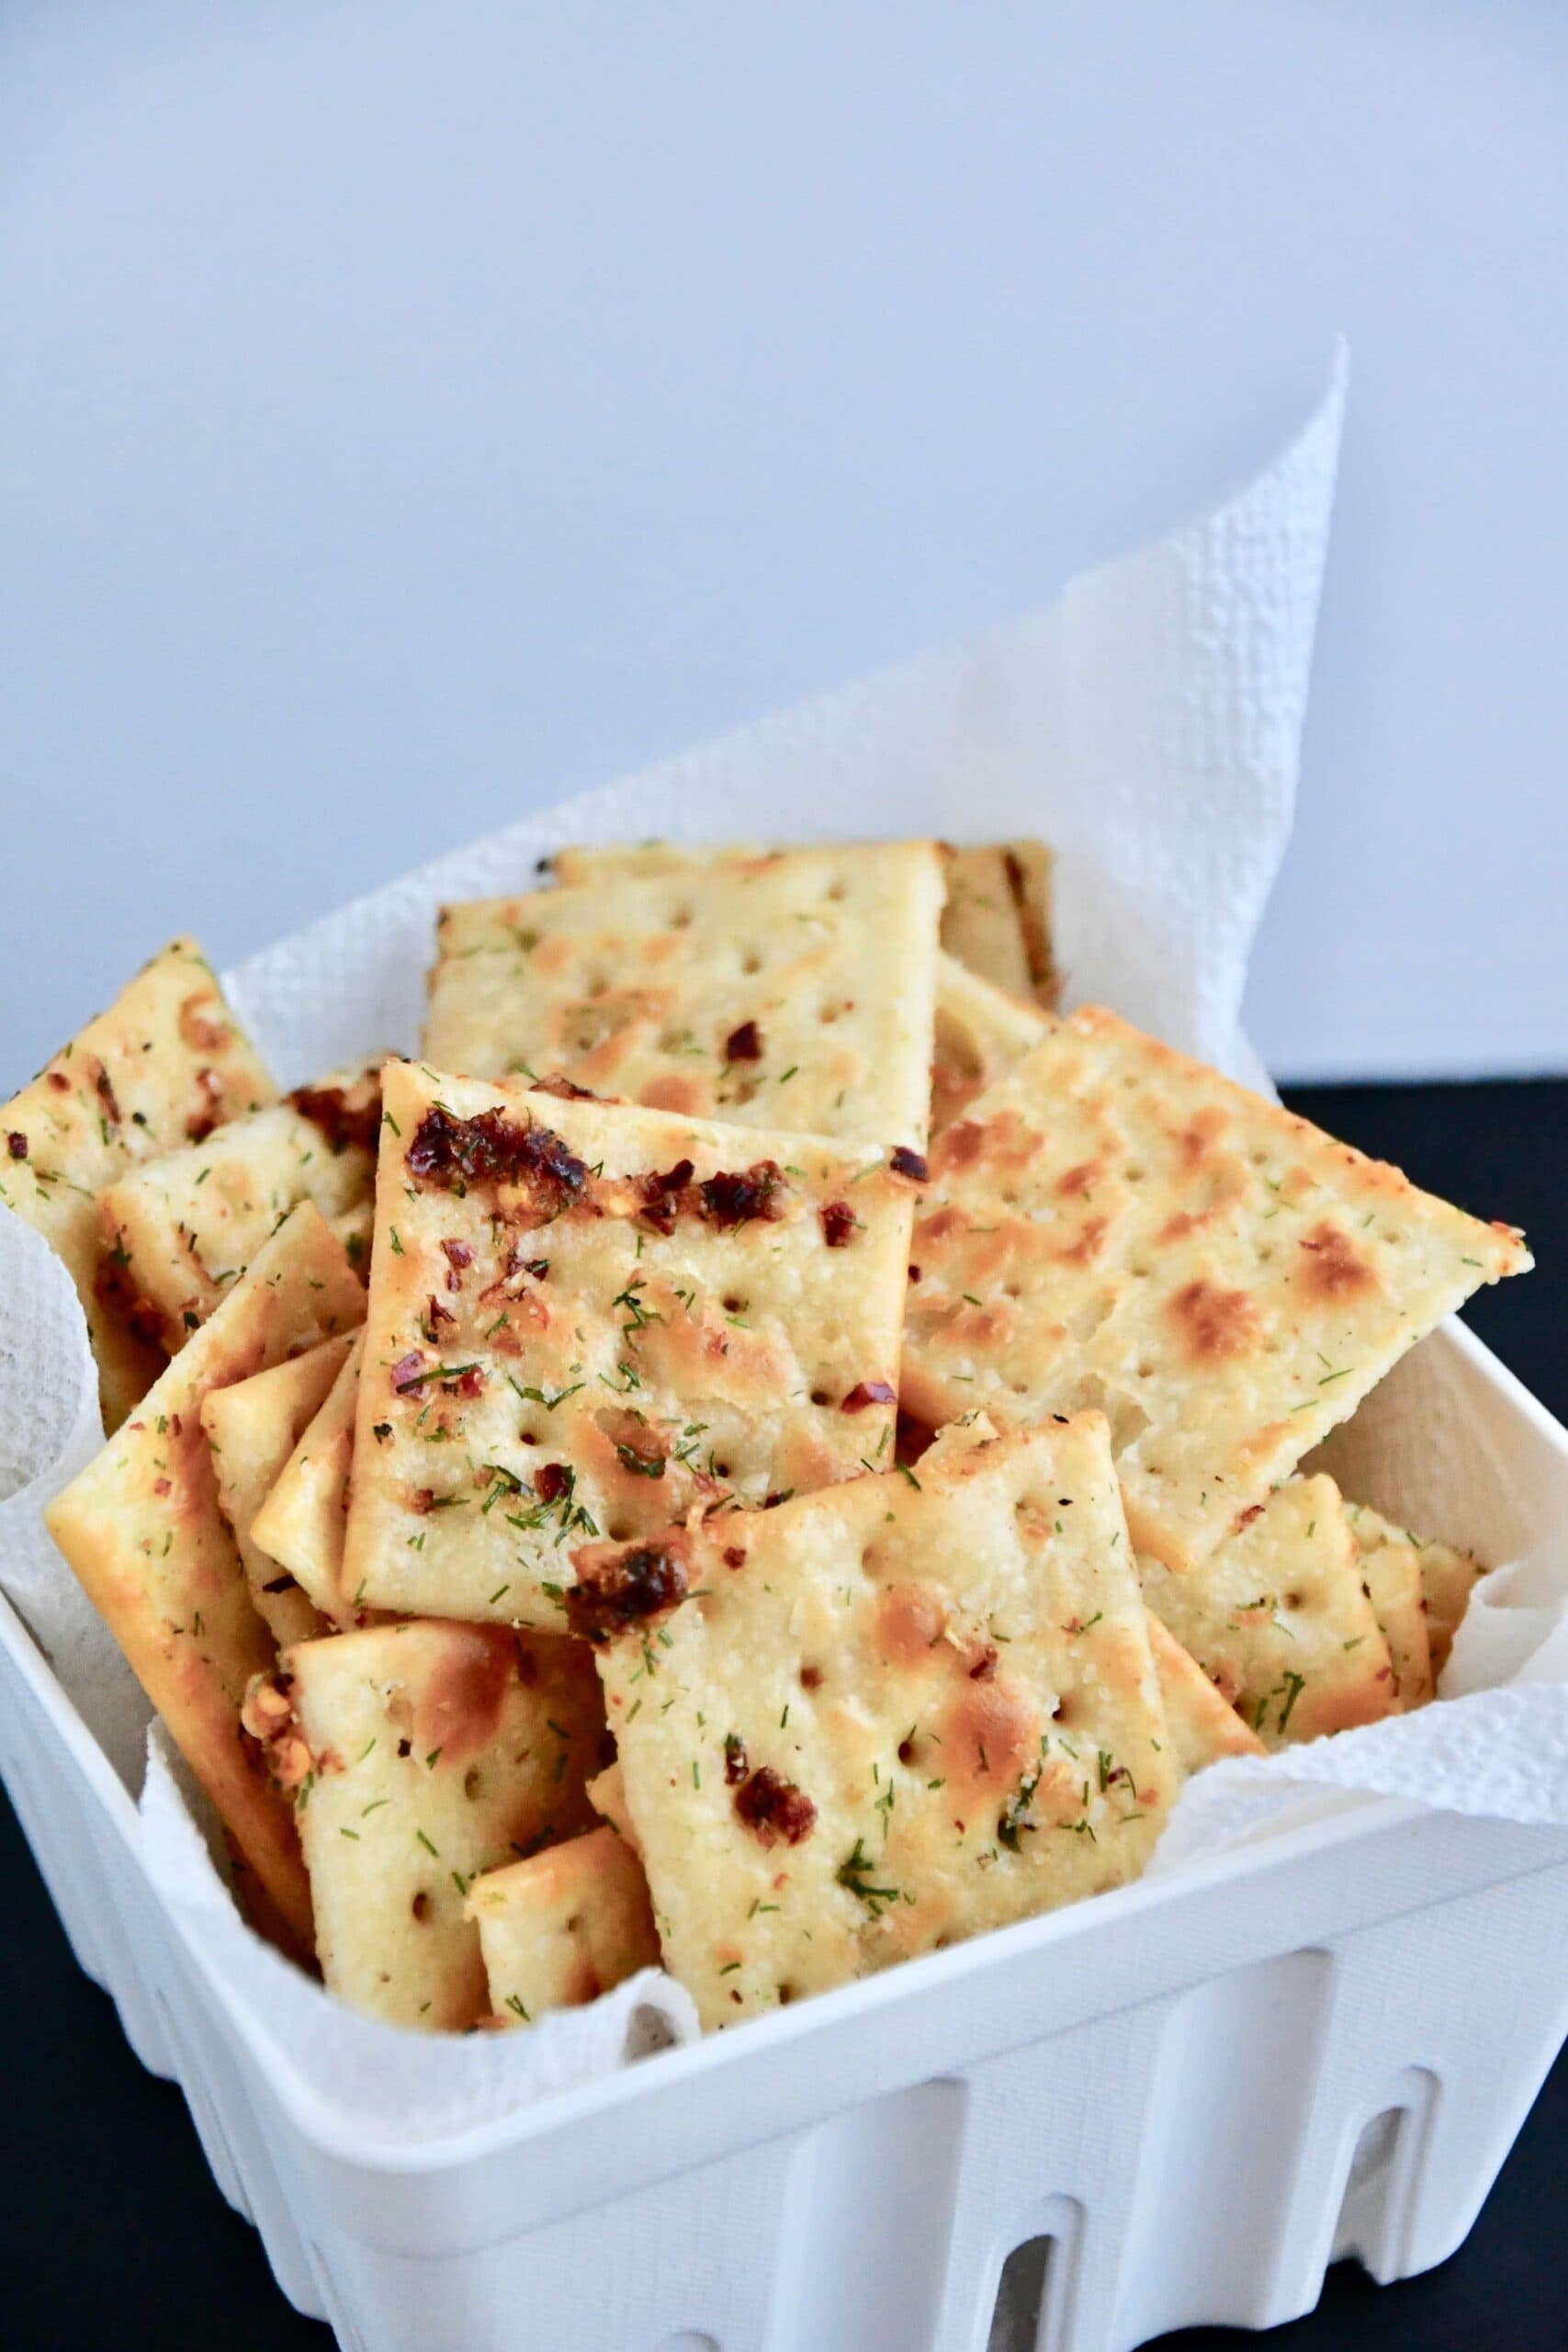 Joanna Gaines recipe for Beck's Crackers from the Magnolia Table Cookbook Vol. 1.